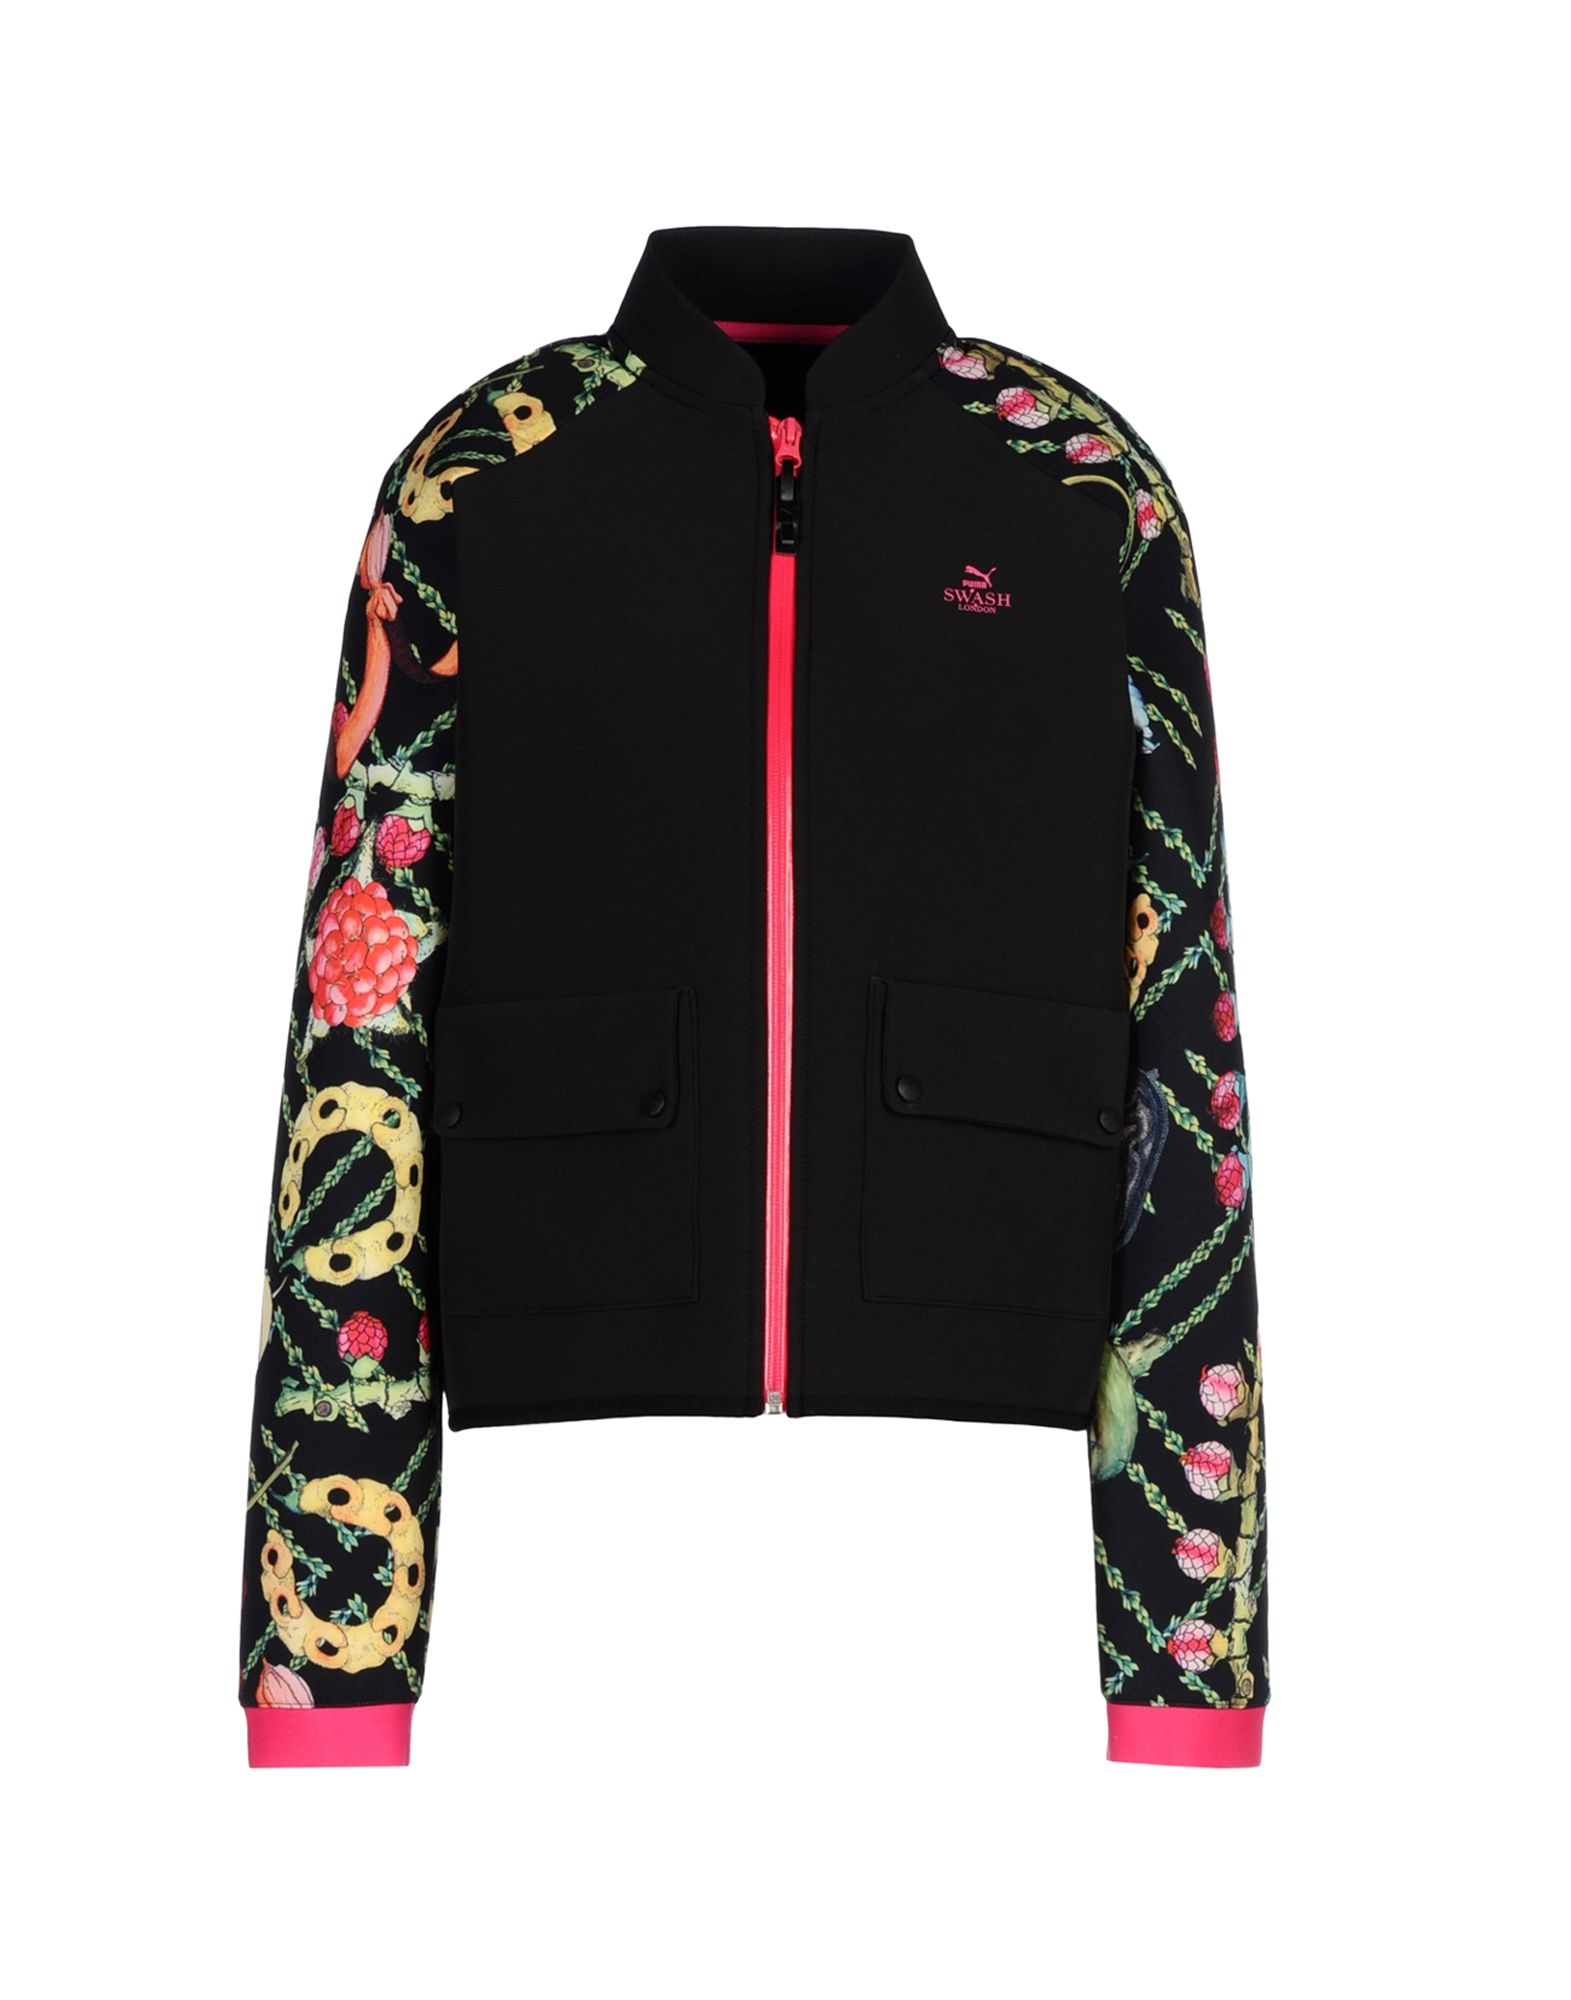 Giubbotto Swash London X Puma Swash Tech Track Jacket - Donna - Acquista online su Gn2Ug